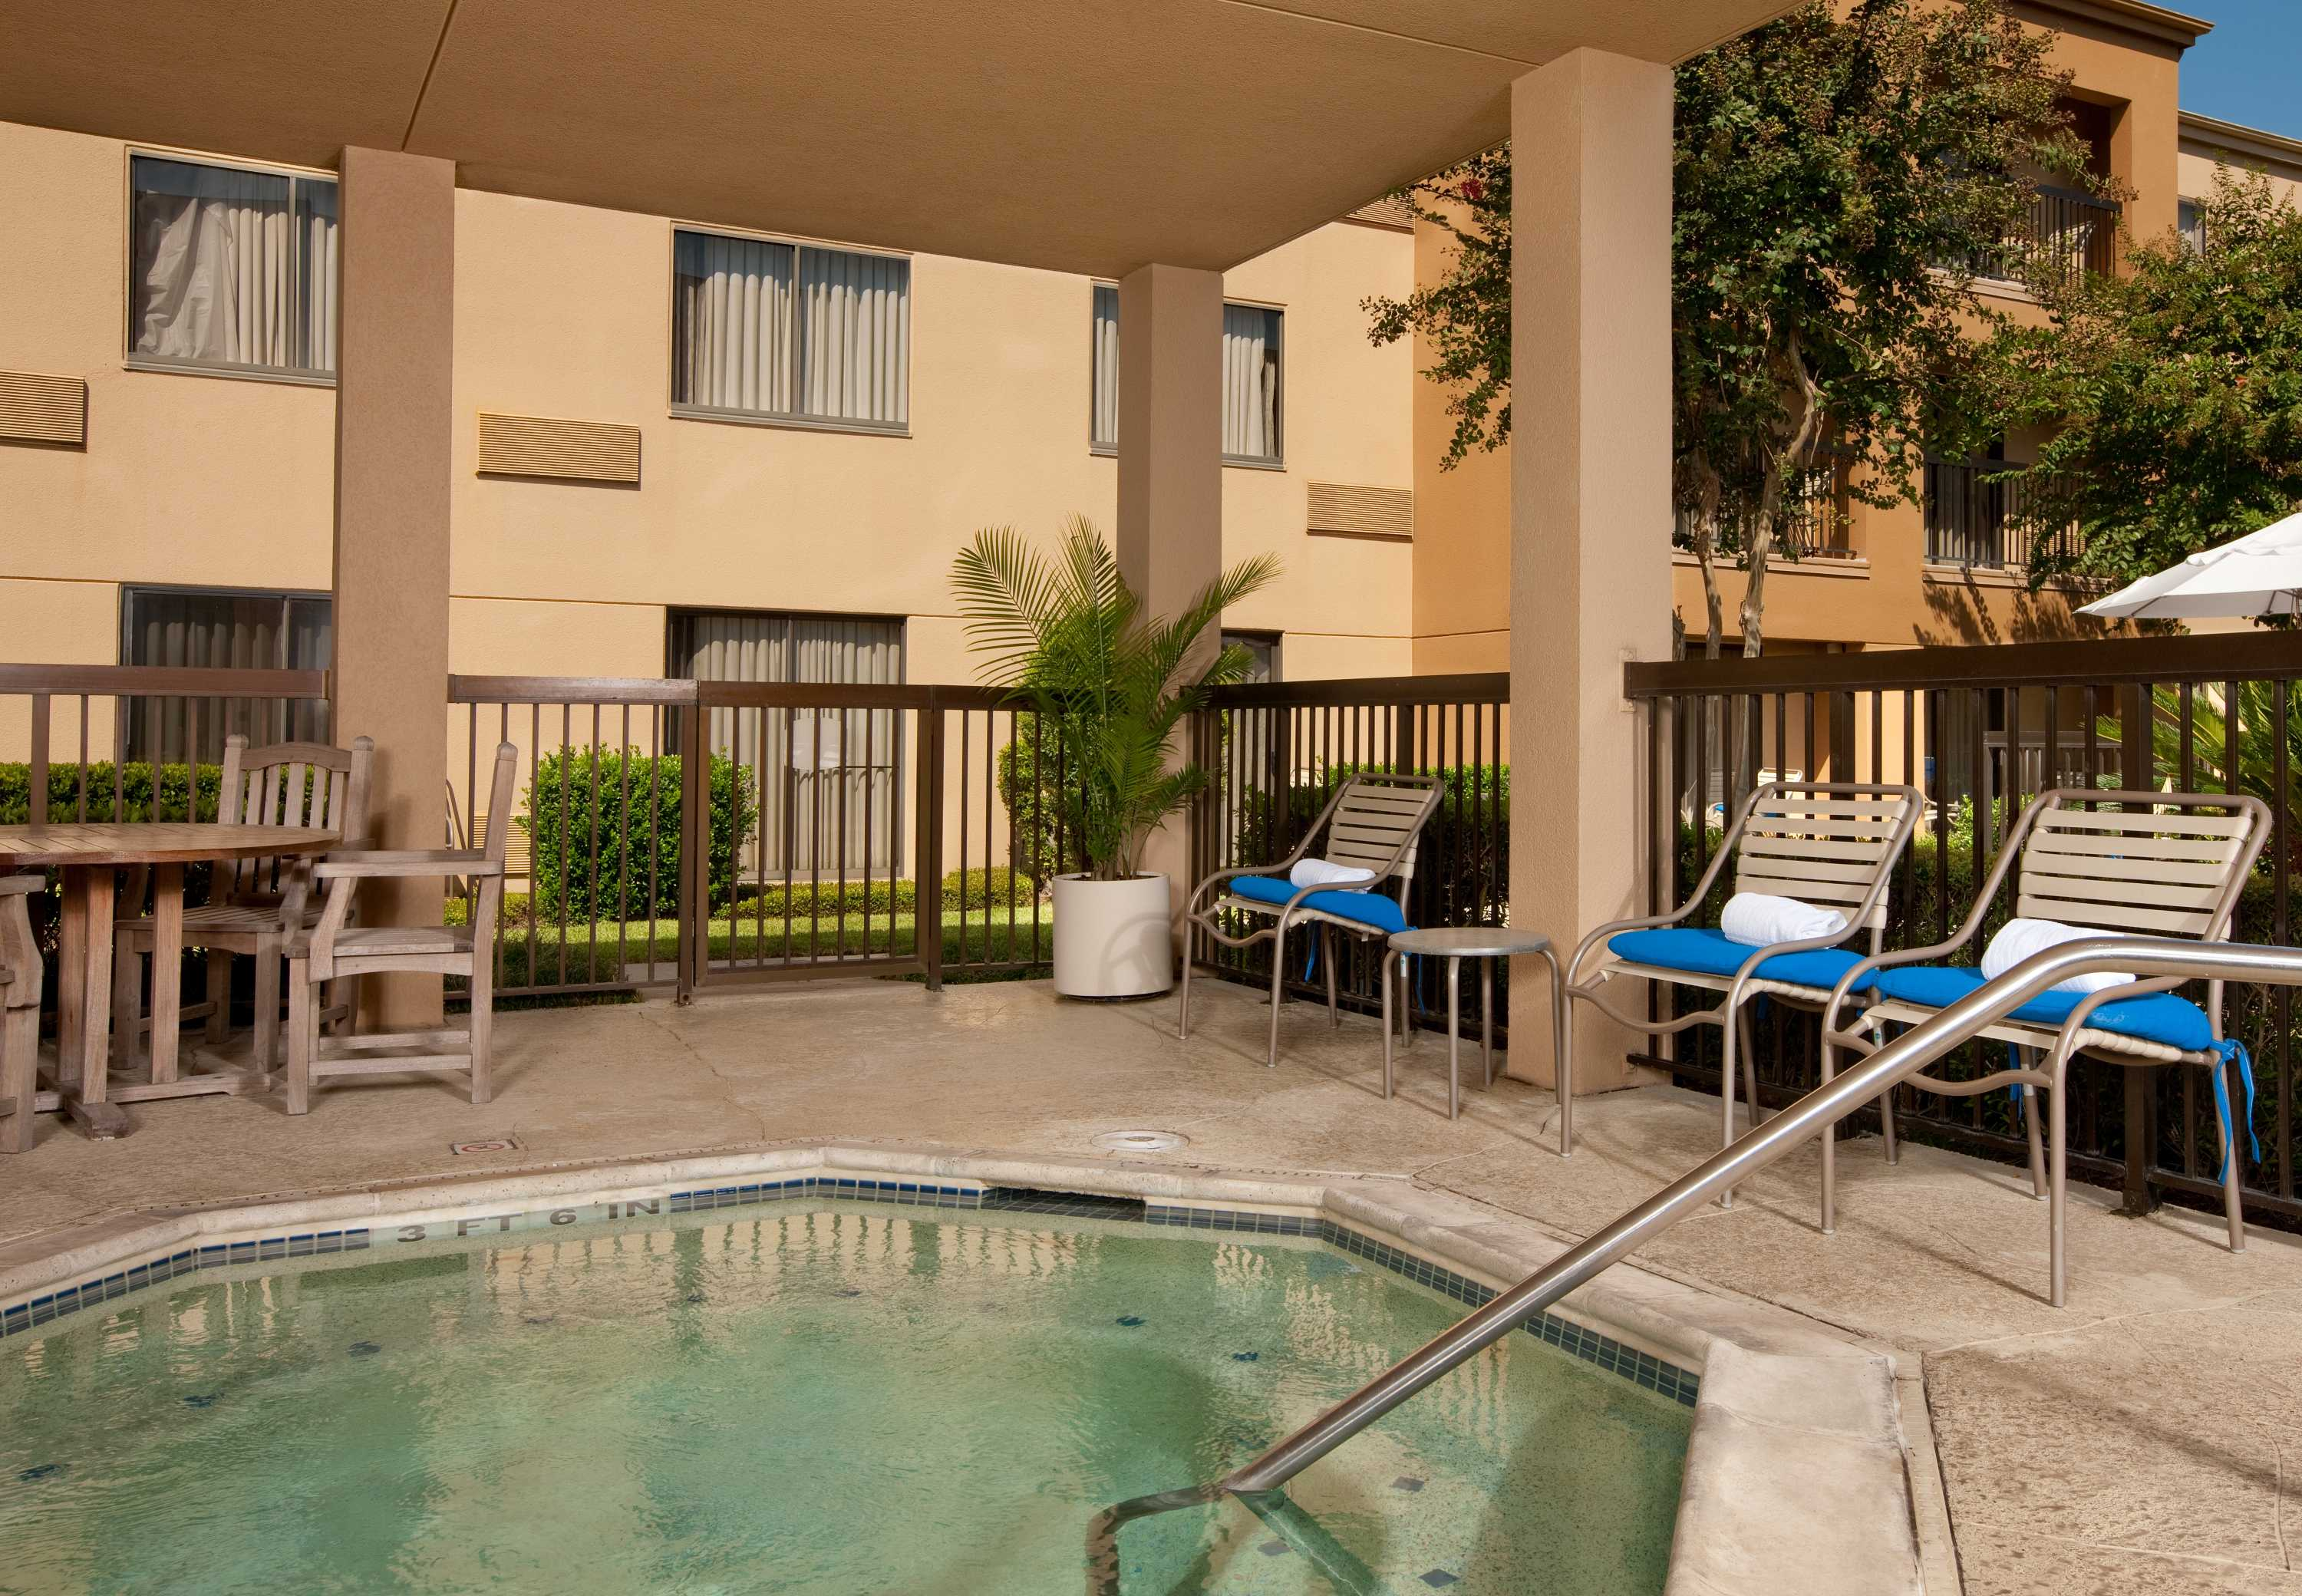 Courtyard by Marriott Houston Hobby Airport image 20